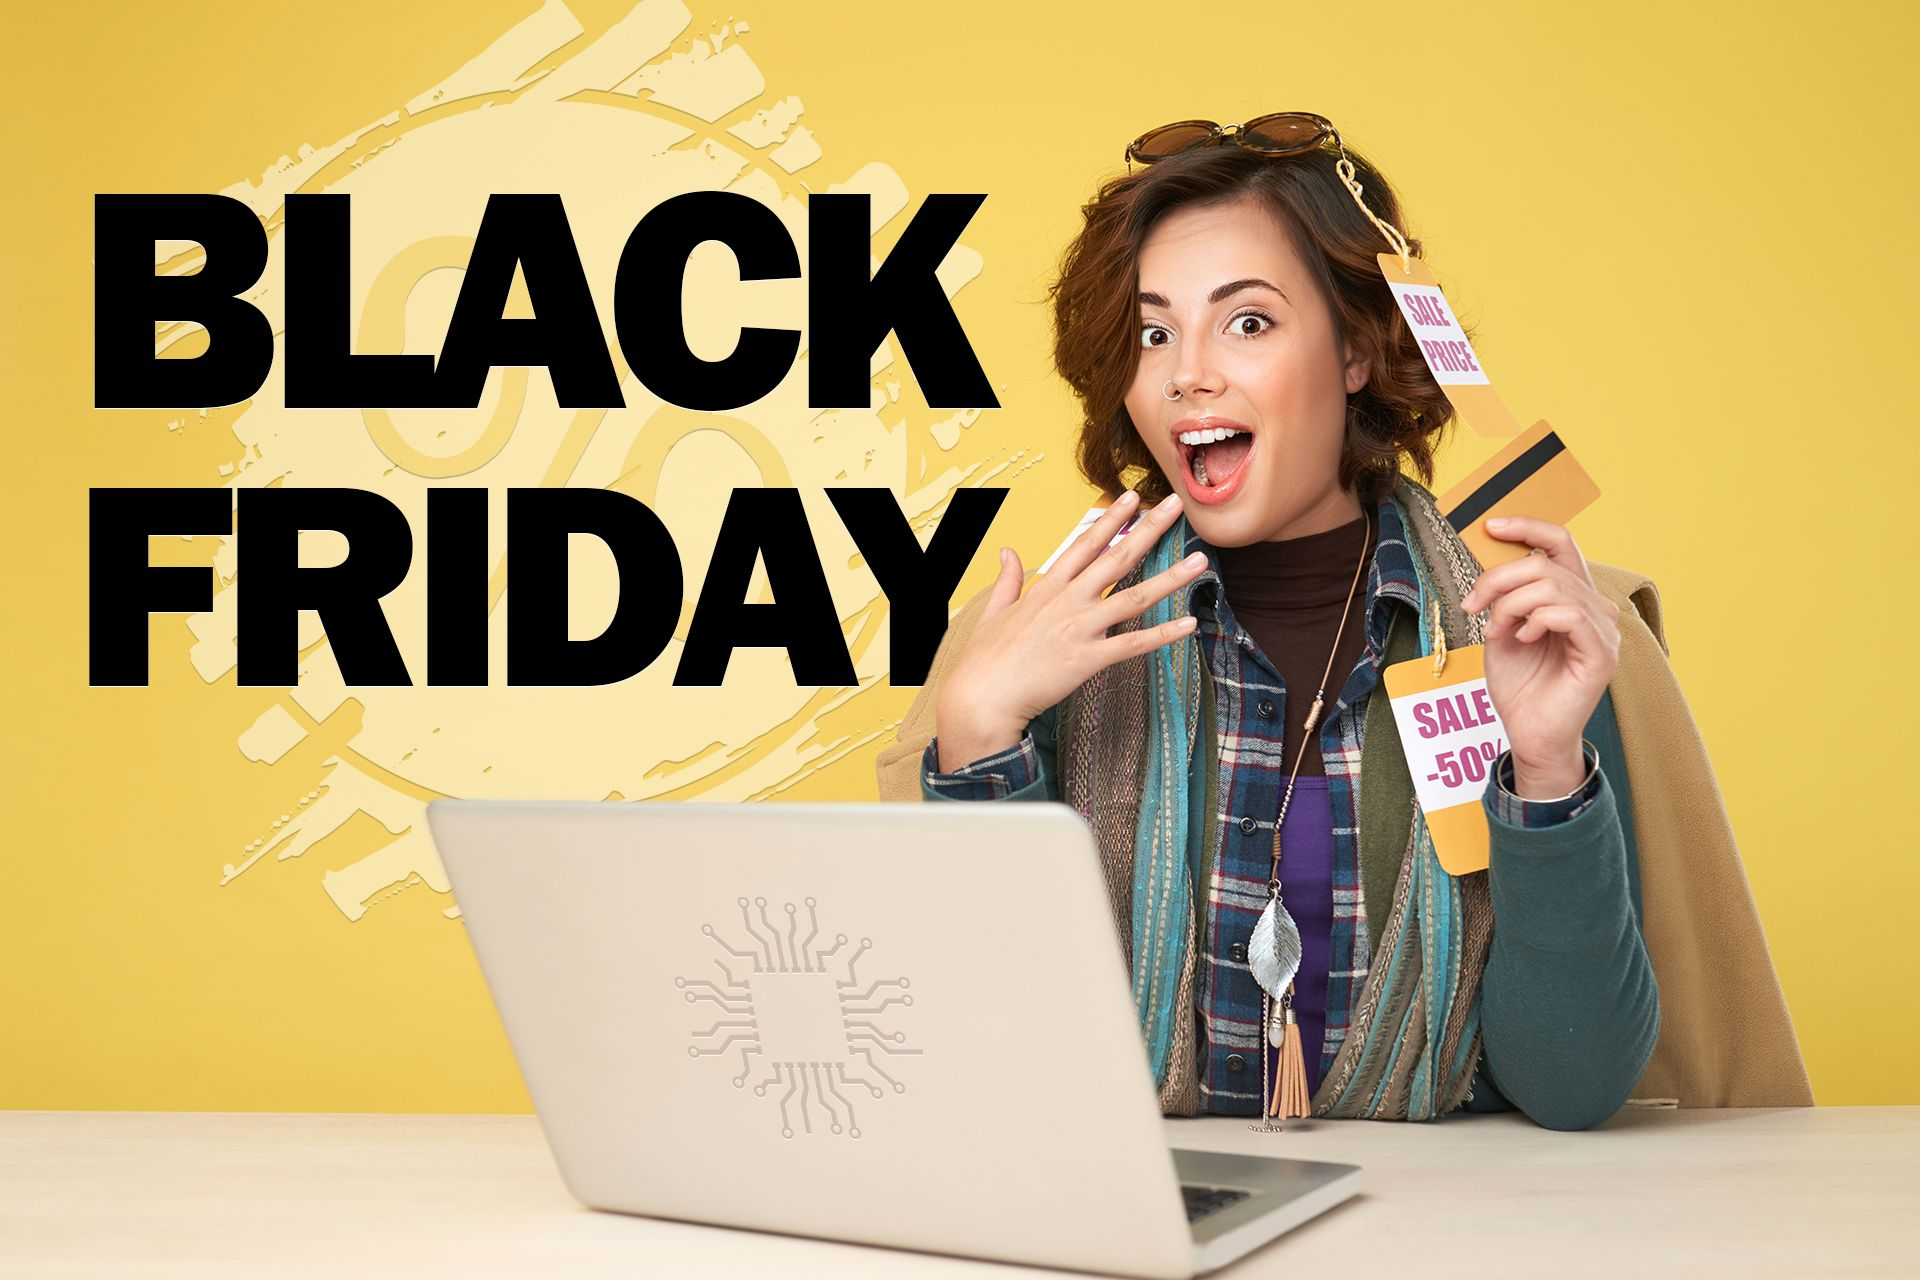 Black Friday, come prepararsi per aumentare le vendite